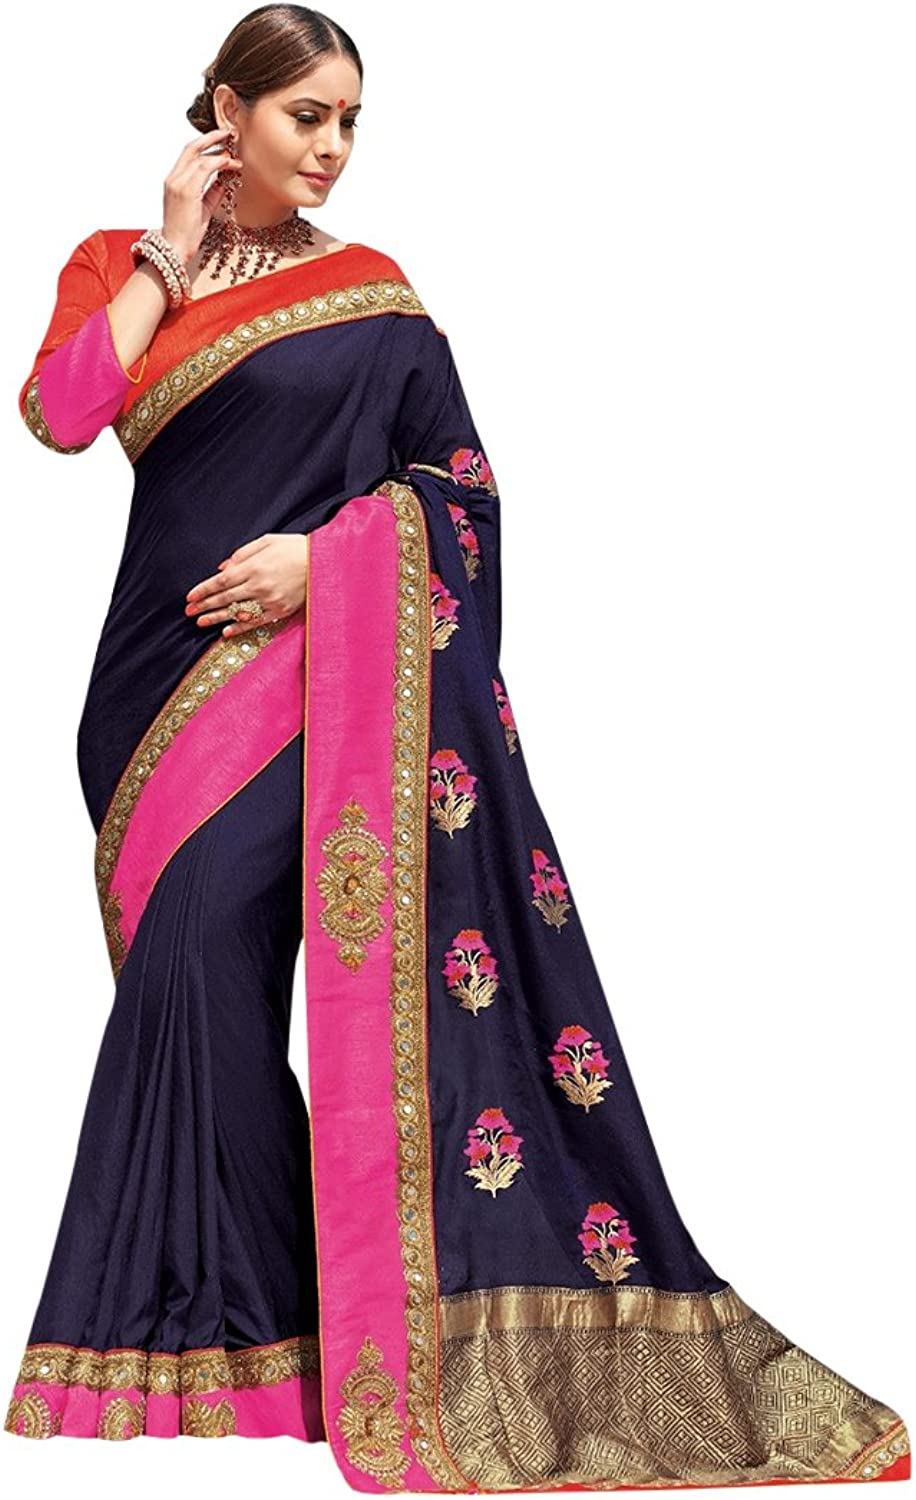 Bollywood Bridal Saree Sari for Women Collection Blouse Wedding Party Wear Ceremony 822 22